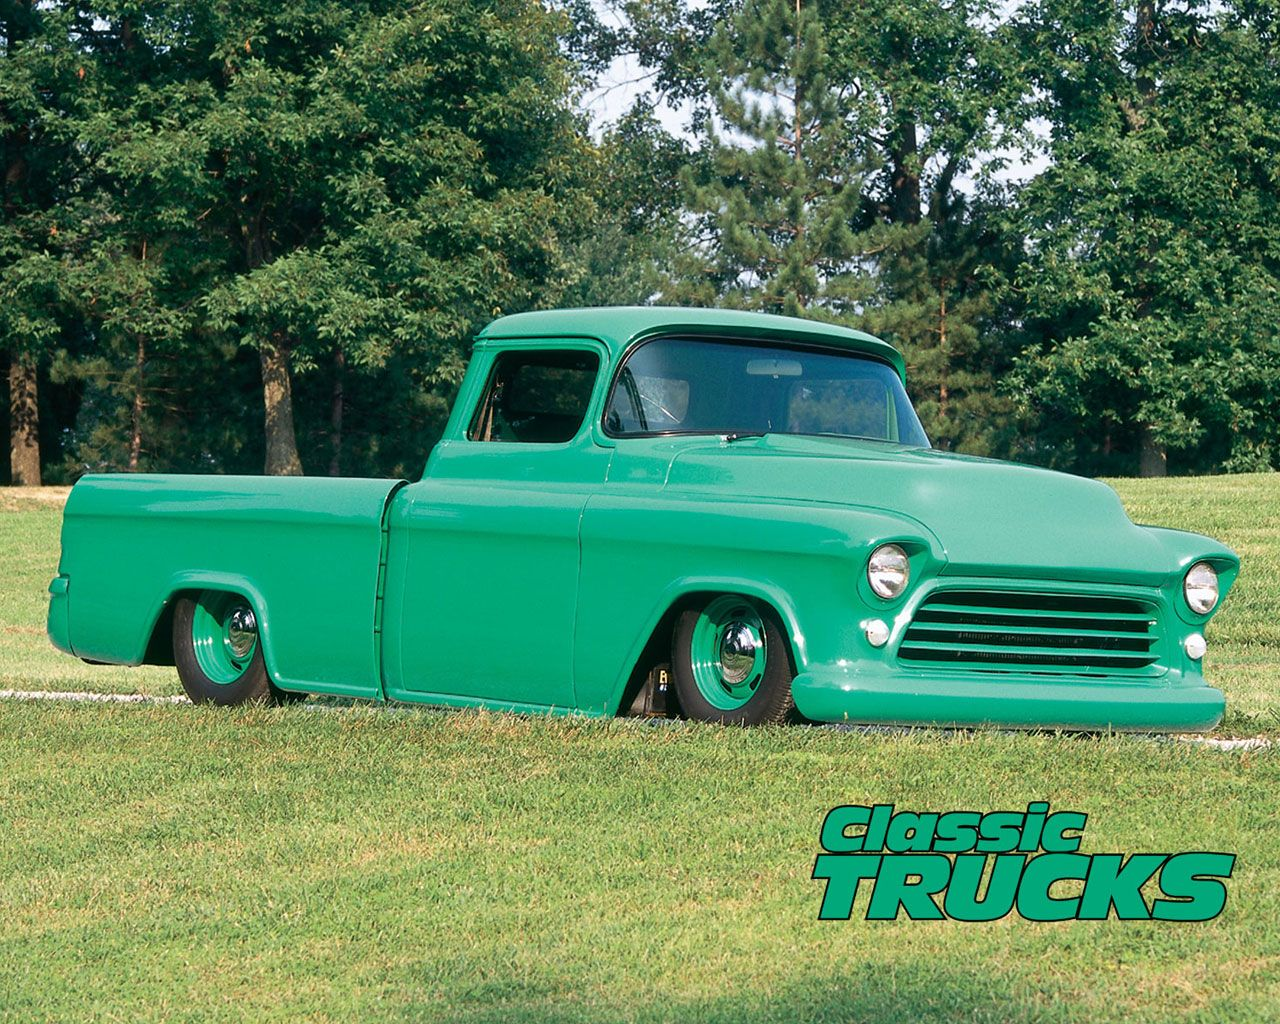 Classic Truck HD Photo Wallpapers 9322   Amazing Wallpaperz 1280x1024